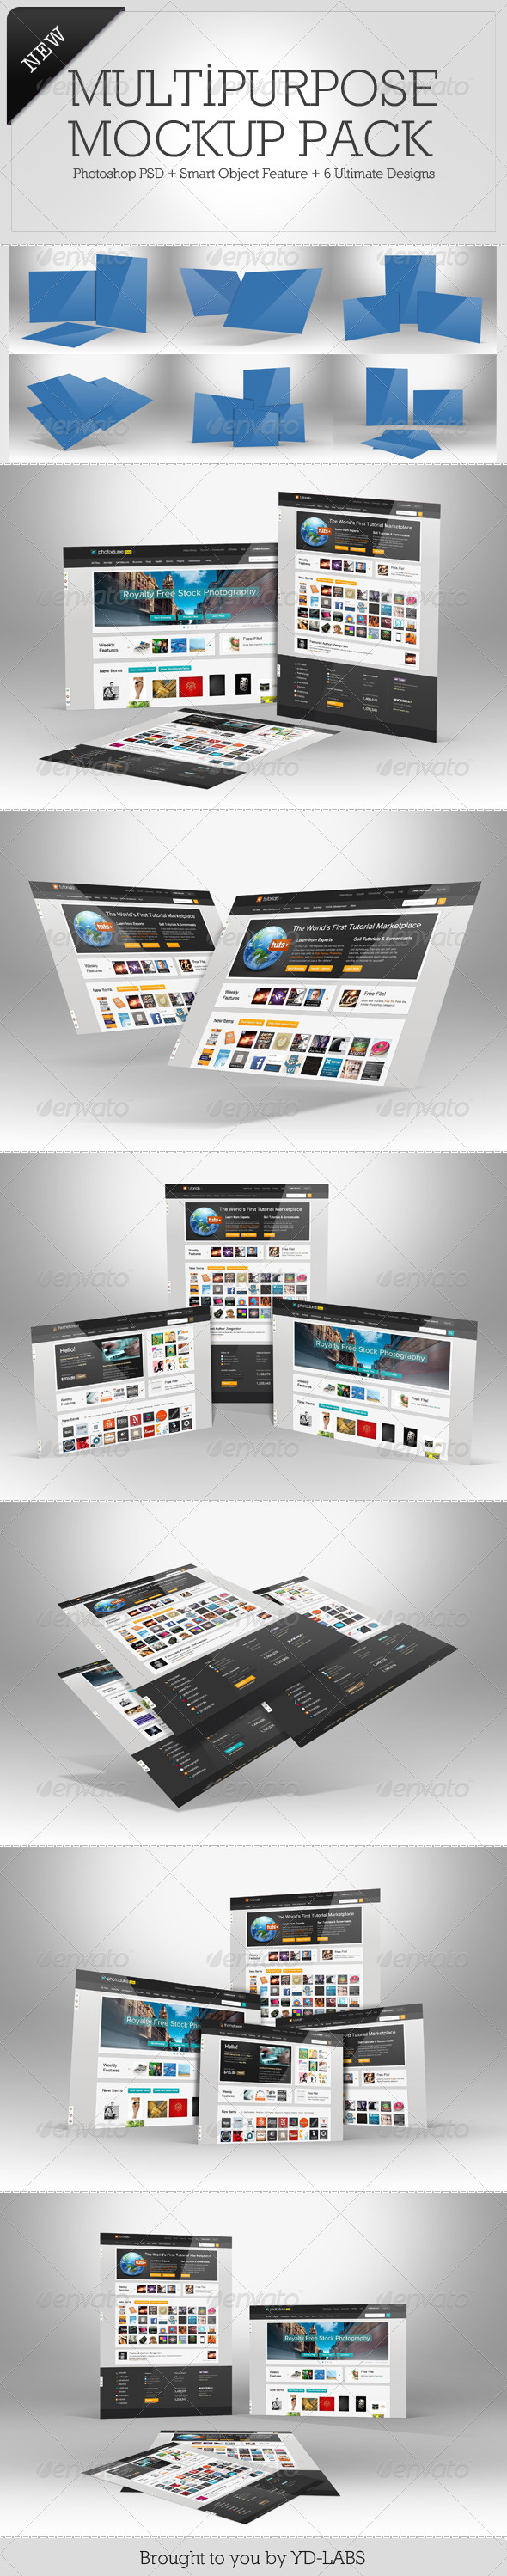 Multipurpose Mockup Pack 4 - Miscellaneous Displays